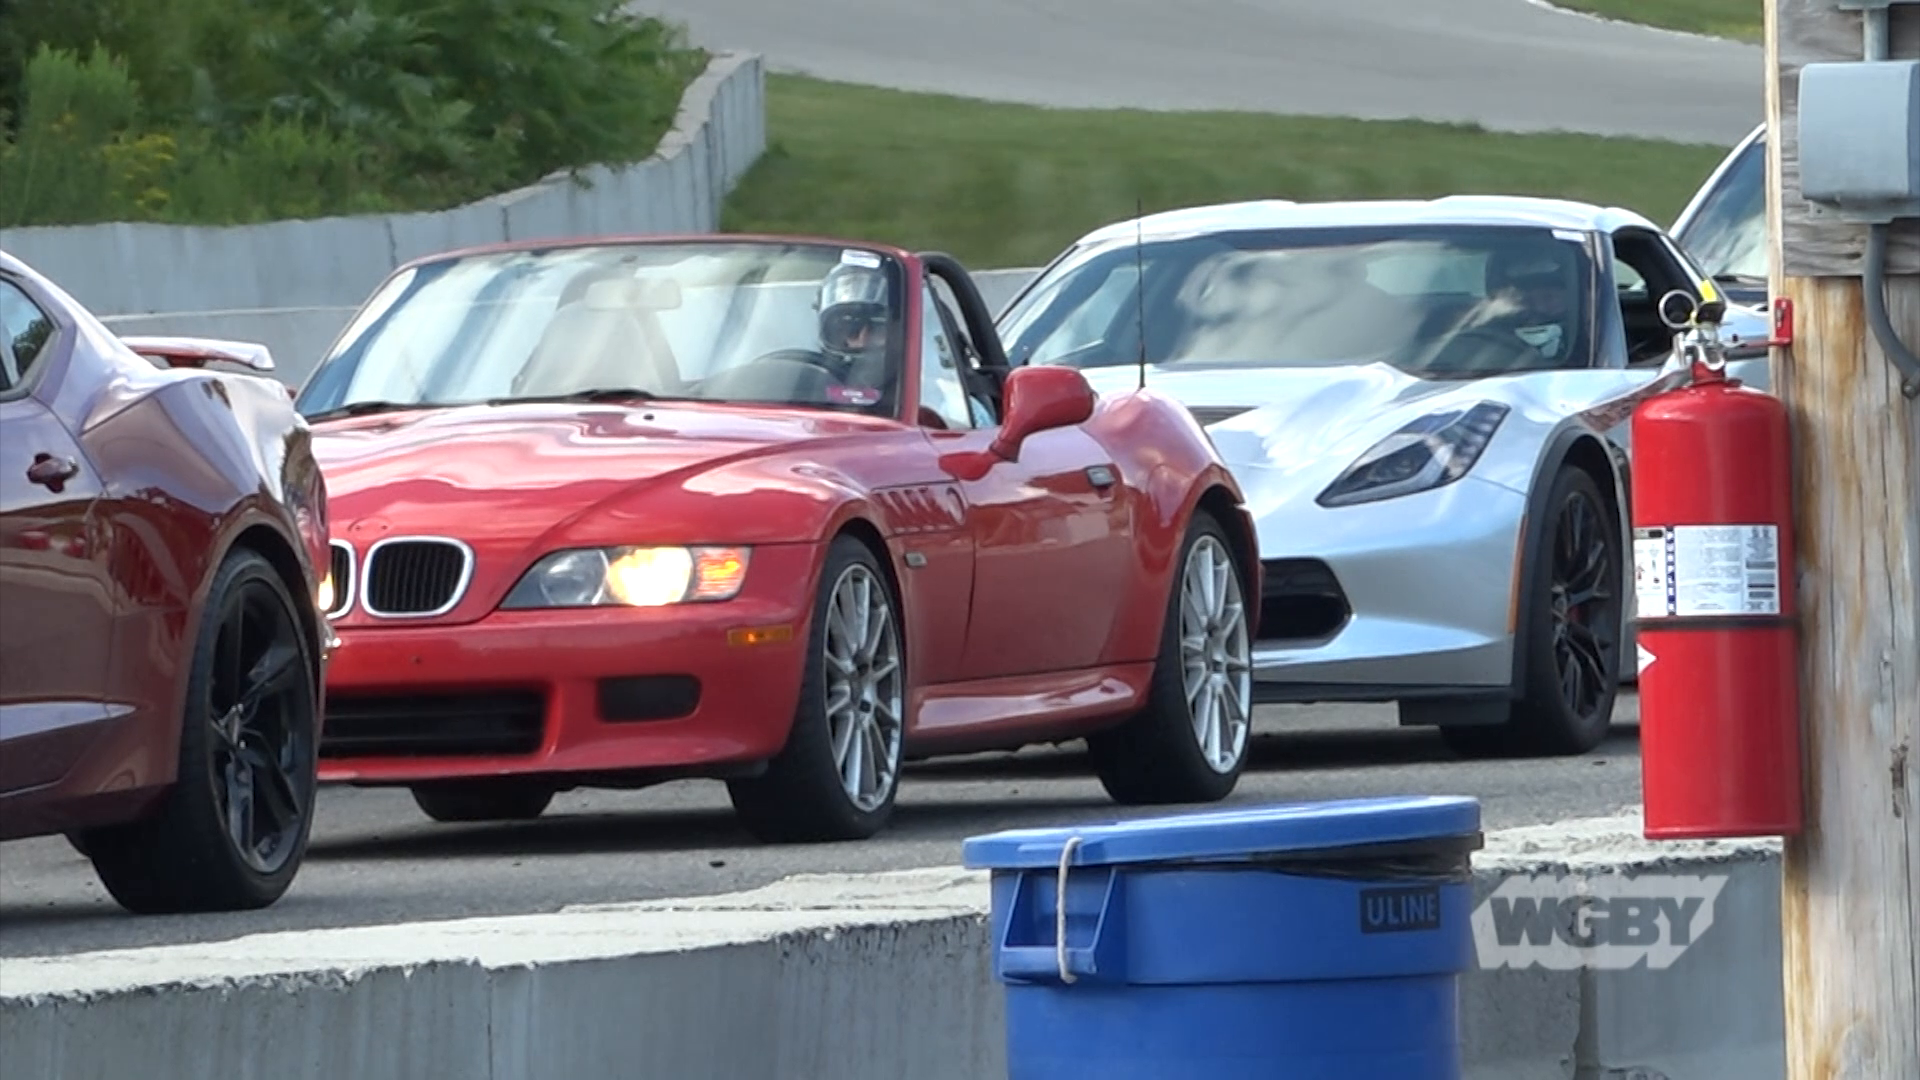 uckle up and join local amateur race car drivers as they put the pedal to the medal at New England's newest racetrack, the Palmer Motorsports Park.